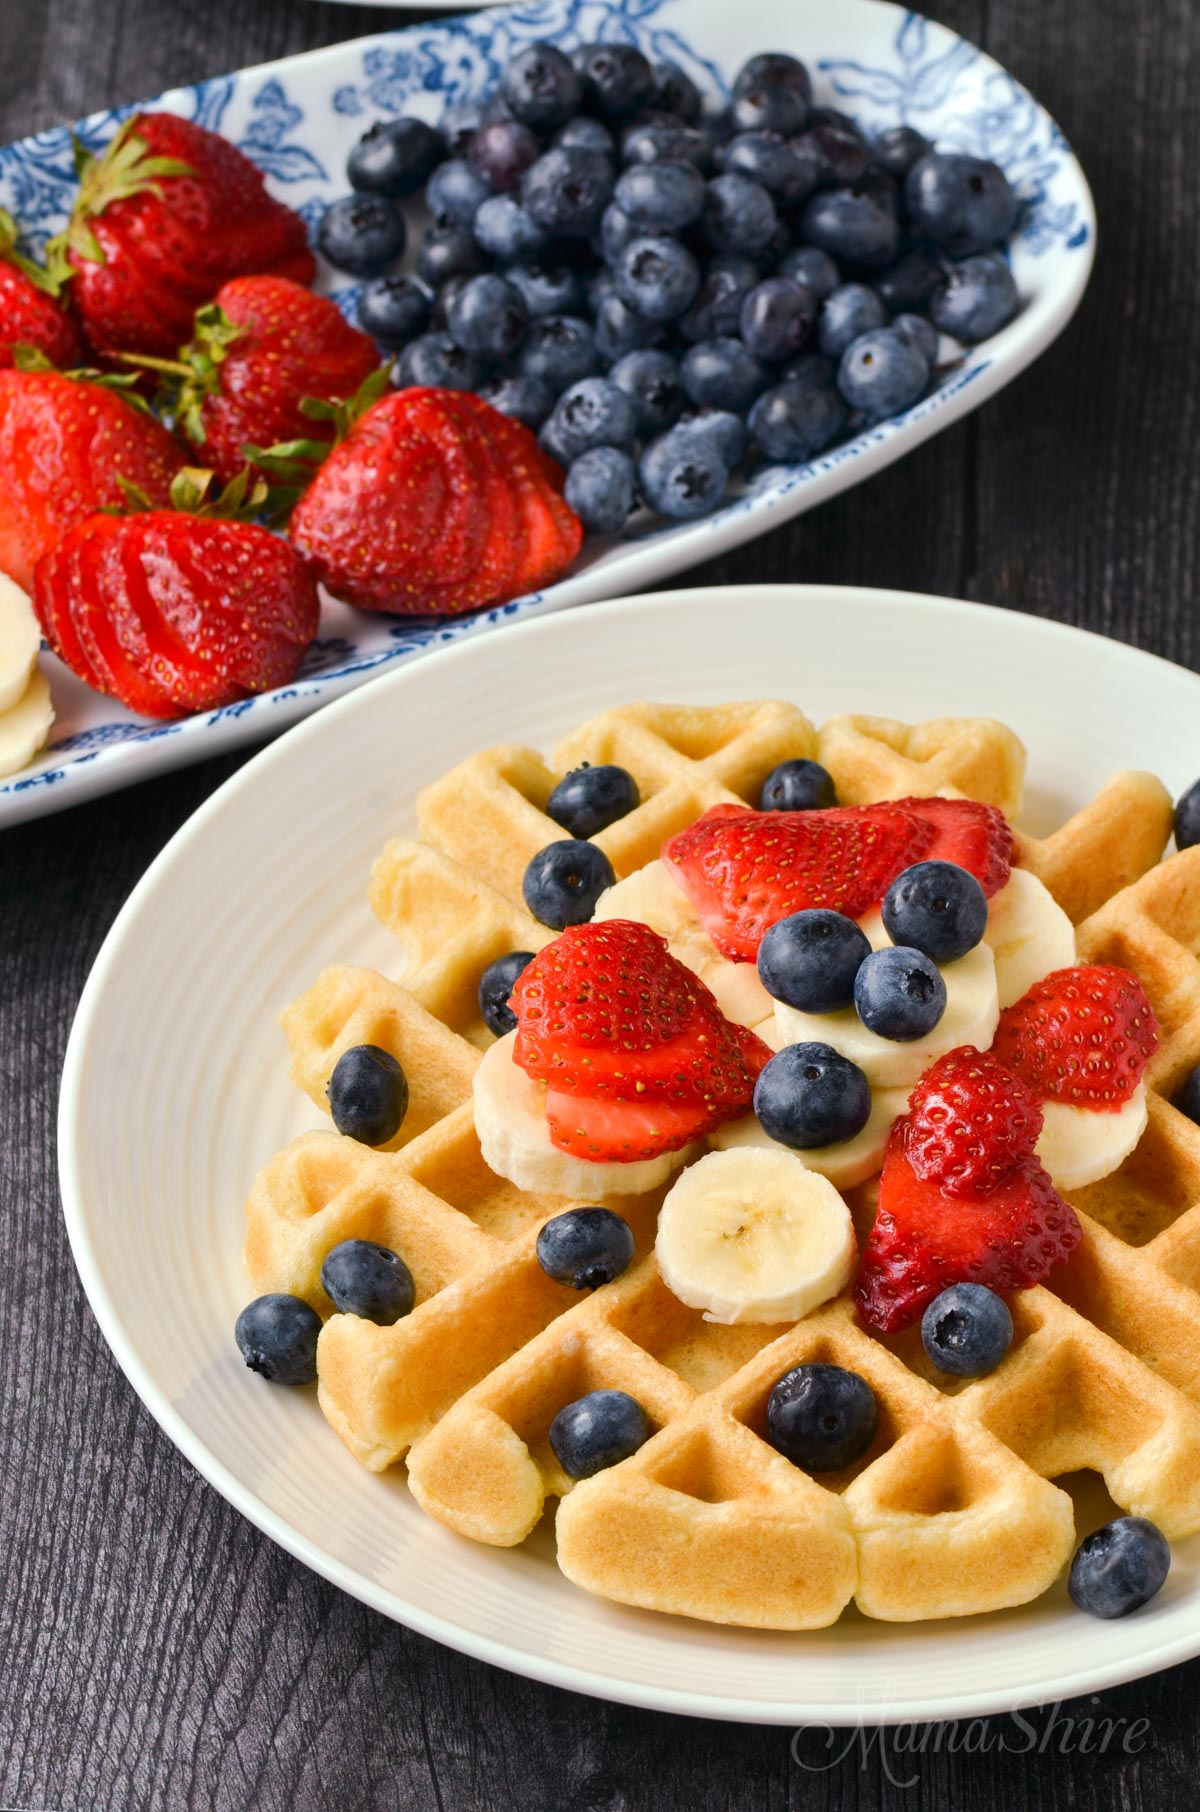 Waffles with bananas, strawberries, and blueberries.